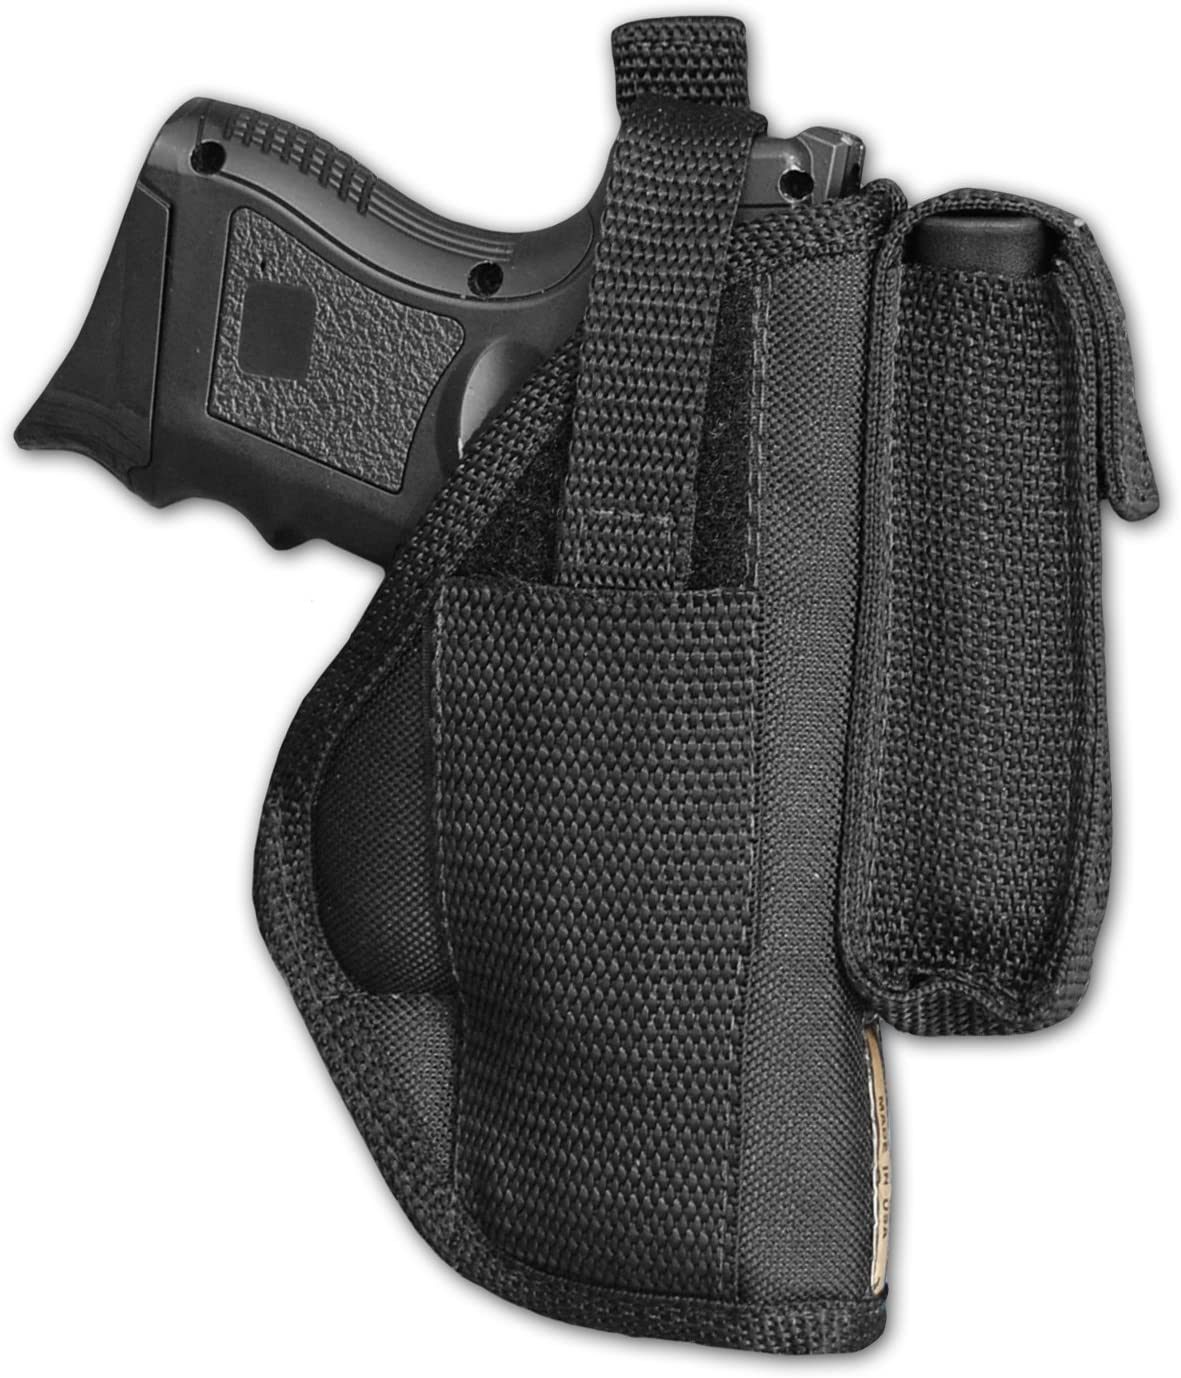 Barsony New Gun OWB Belt Holster w/Magazine Pouch for Compact 9mm 40 45 Pistols